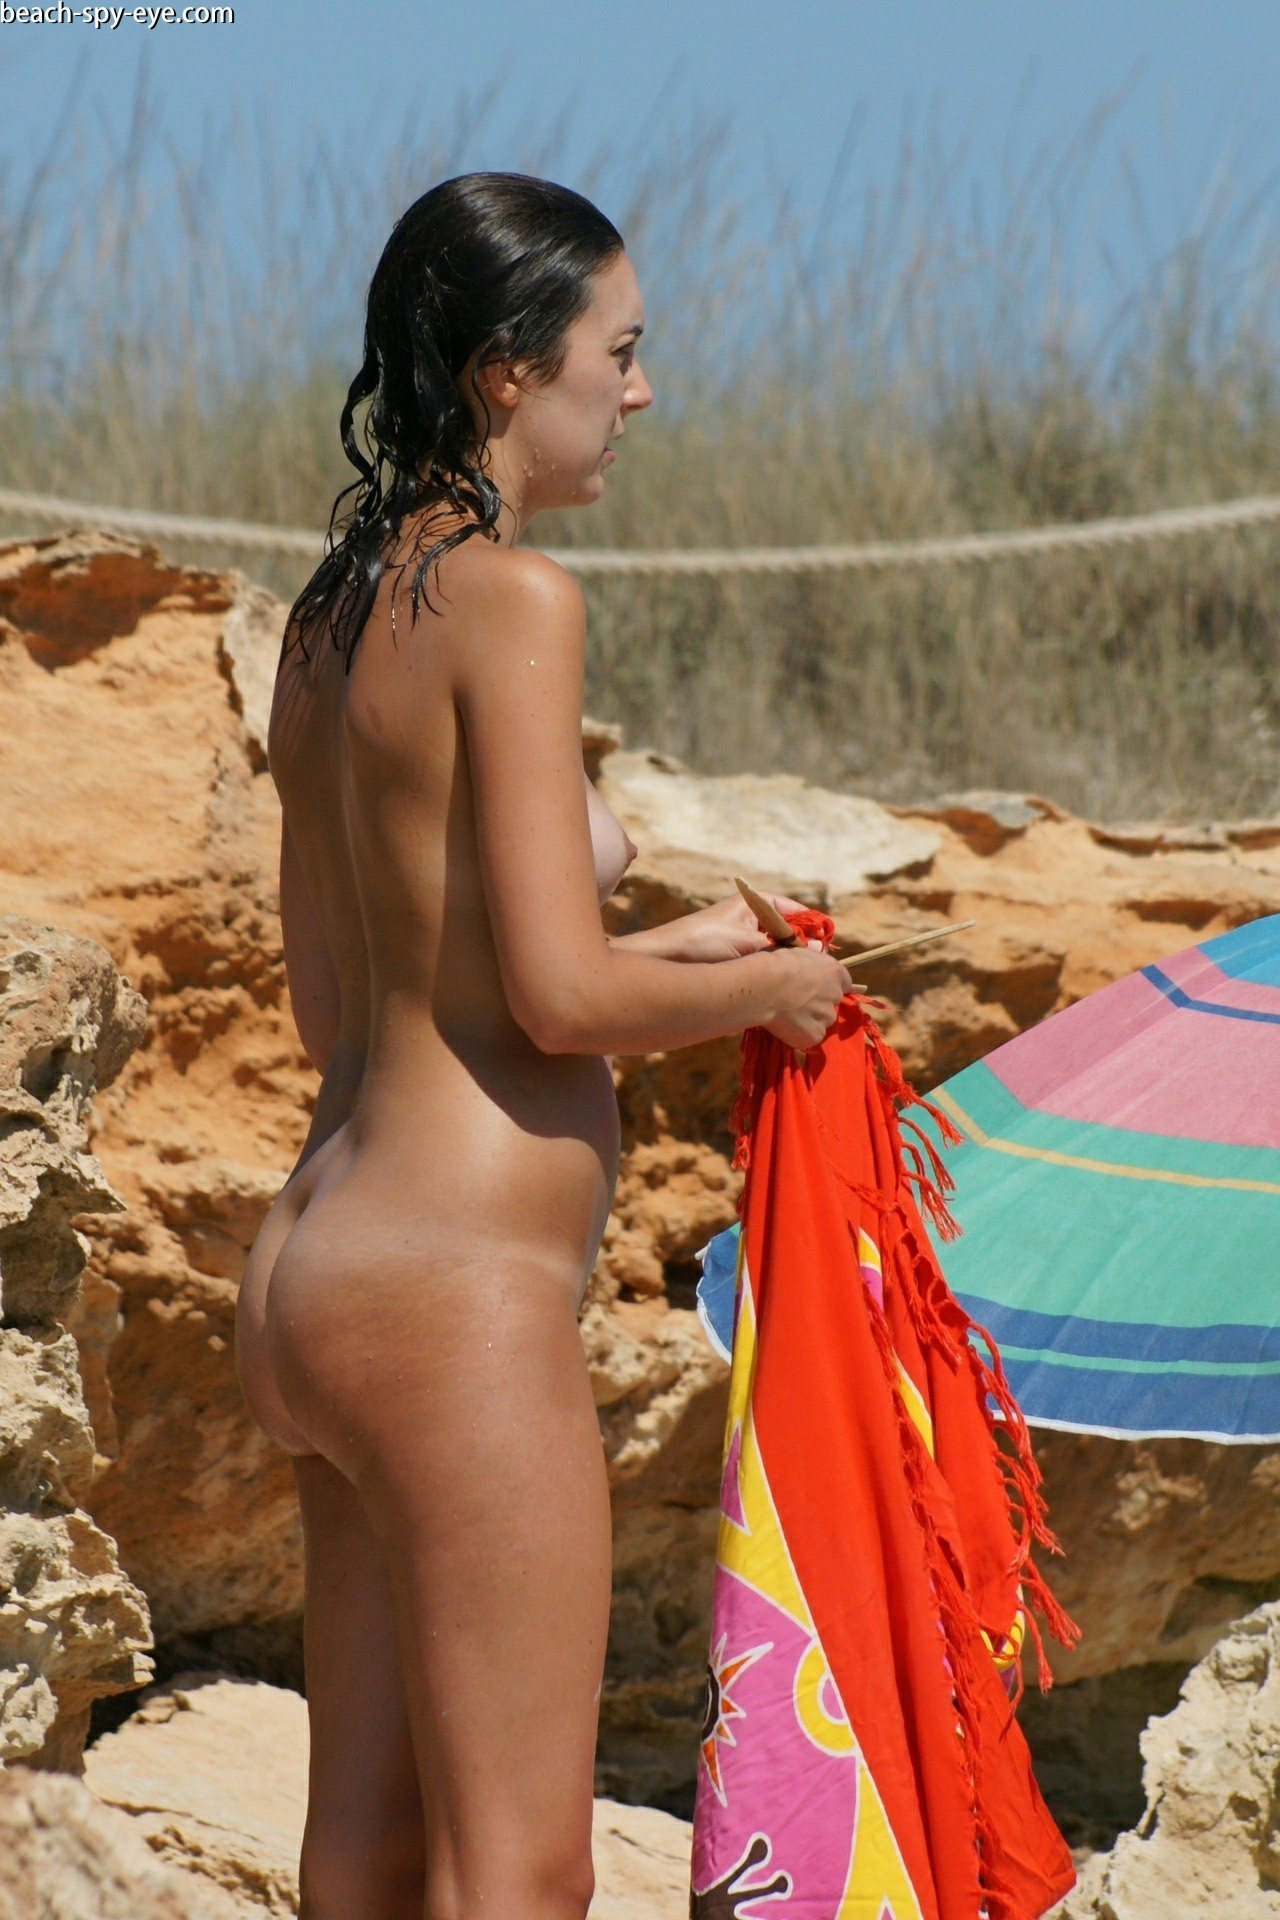 https://pbs-0.adult-empire.com/39/3926/beach_nude_women-6149/1-beach_nude_women.jpg